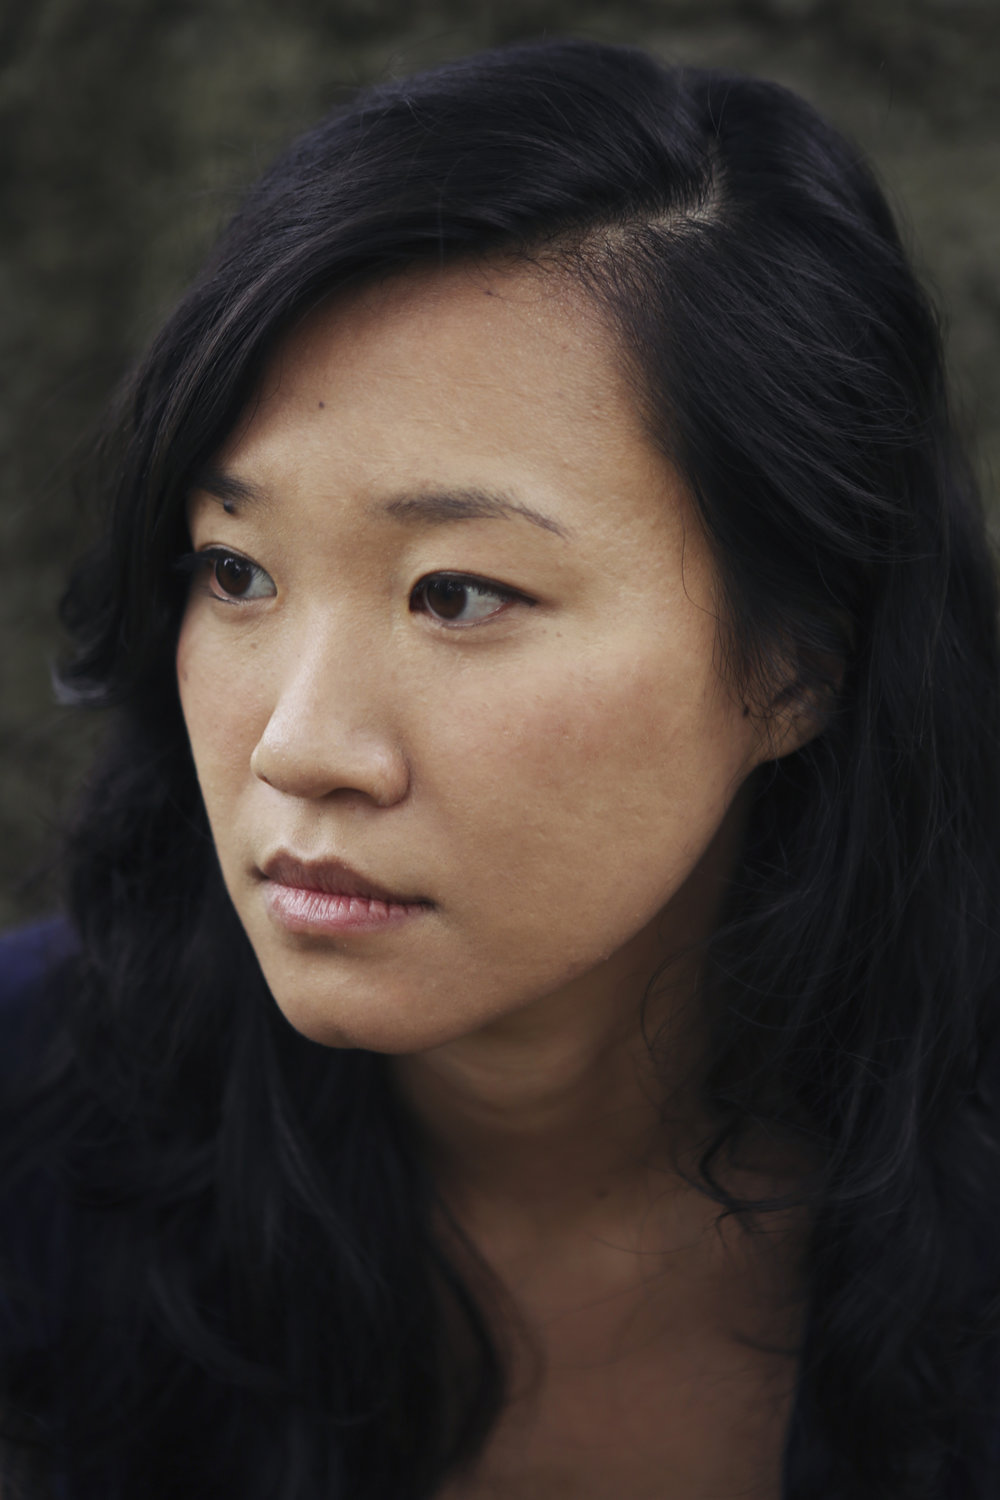 jenny xie  Jenny xie is the author of  Eye Level  (Graywolf Press, 2018), selected by Juan Felipe Herrera as the winner of the 2017 Walt Whitman Award of the Academy of American Poets, and  Nowhere to Arrive  (Northwestern University Press, 2017), recipient of the 2016 Drinking Gourd Prize. Her poems appear in  Poetry , the  American Poetry Review , the  New Republic ,  Tin House , and elsewhere. She has received fellowships and support from Kundiman, the Fine Arts Work Center in Provincetown, the Elizabeth George Foundation, and Poets & Writers.